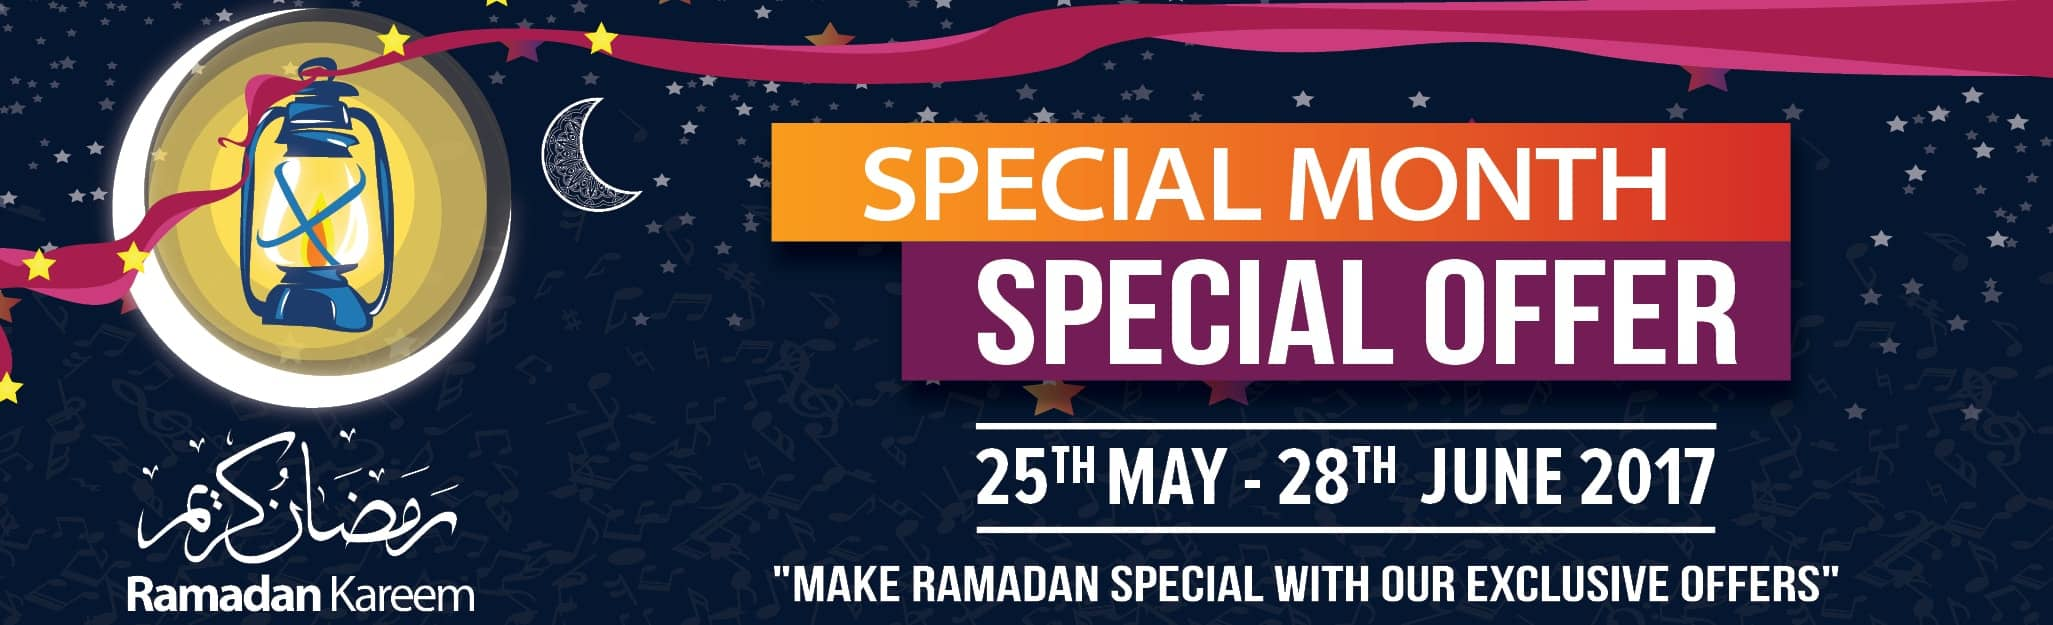 Ramadan special offers | Melody House Dubai